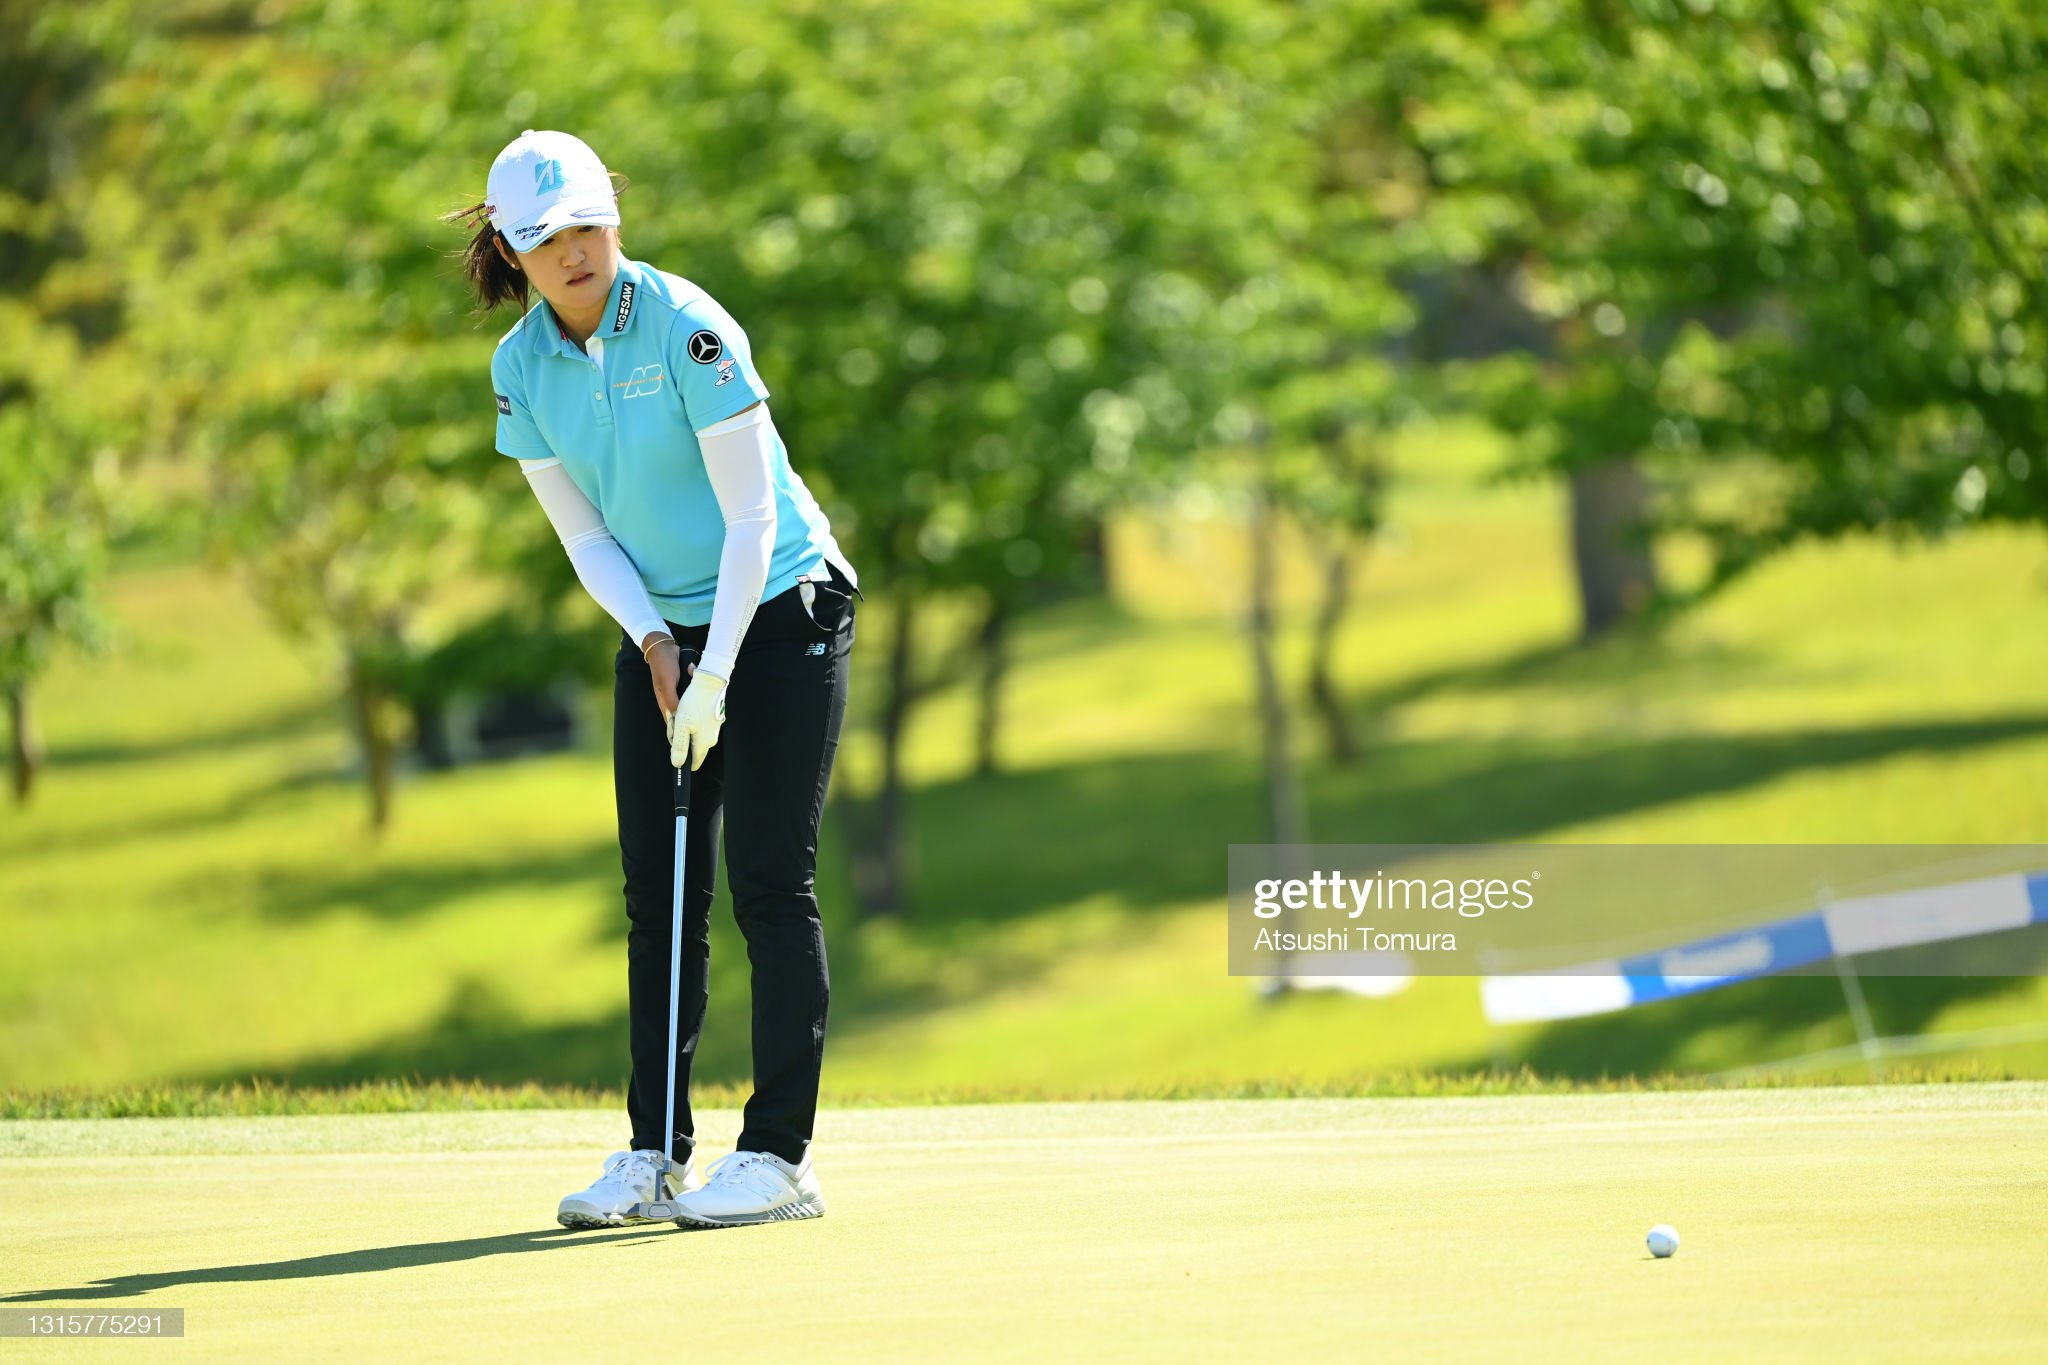 https://media.gettyimages.com/photos/mone-inami-of-japan-reacts-after-a-putt-on-the-18th-green-during-the-picture-id1315775291?s=2048x2048